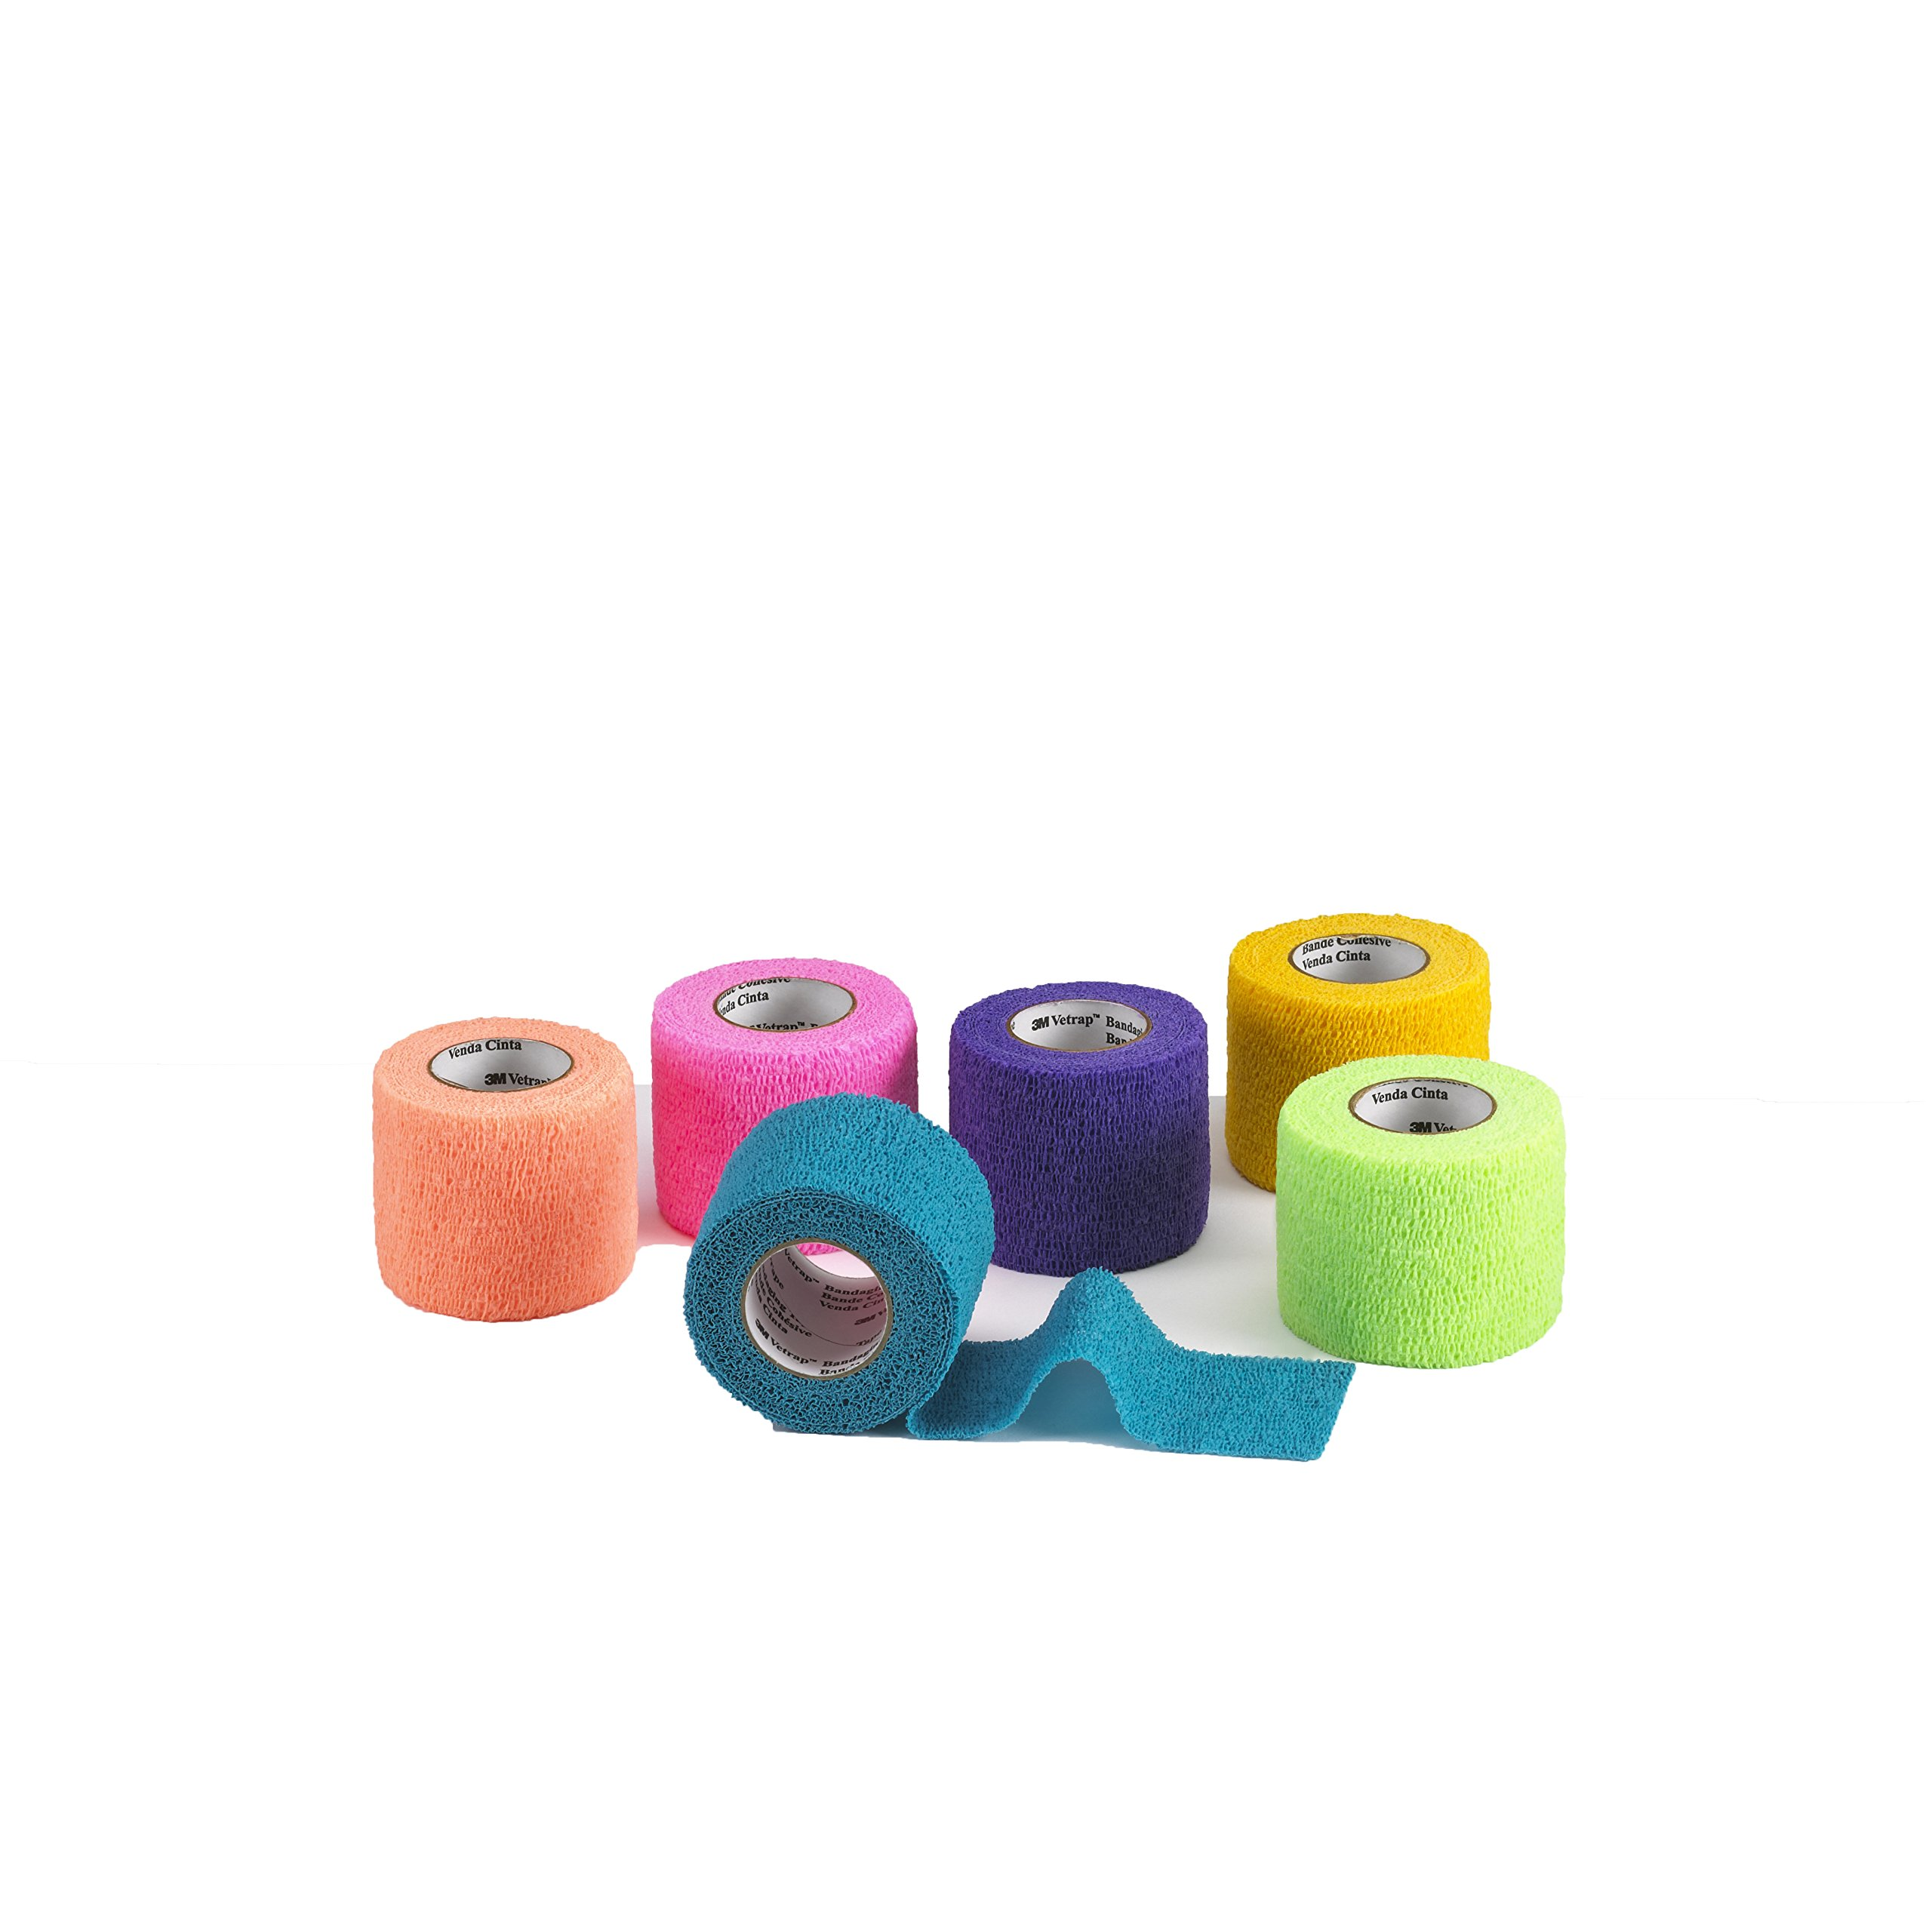 3M Vetrap 6-Bright Color Display Pack Tape for Dogs, Cats and Horses, 2-Inch, Assorted, 18-Roll/Case